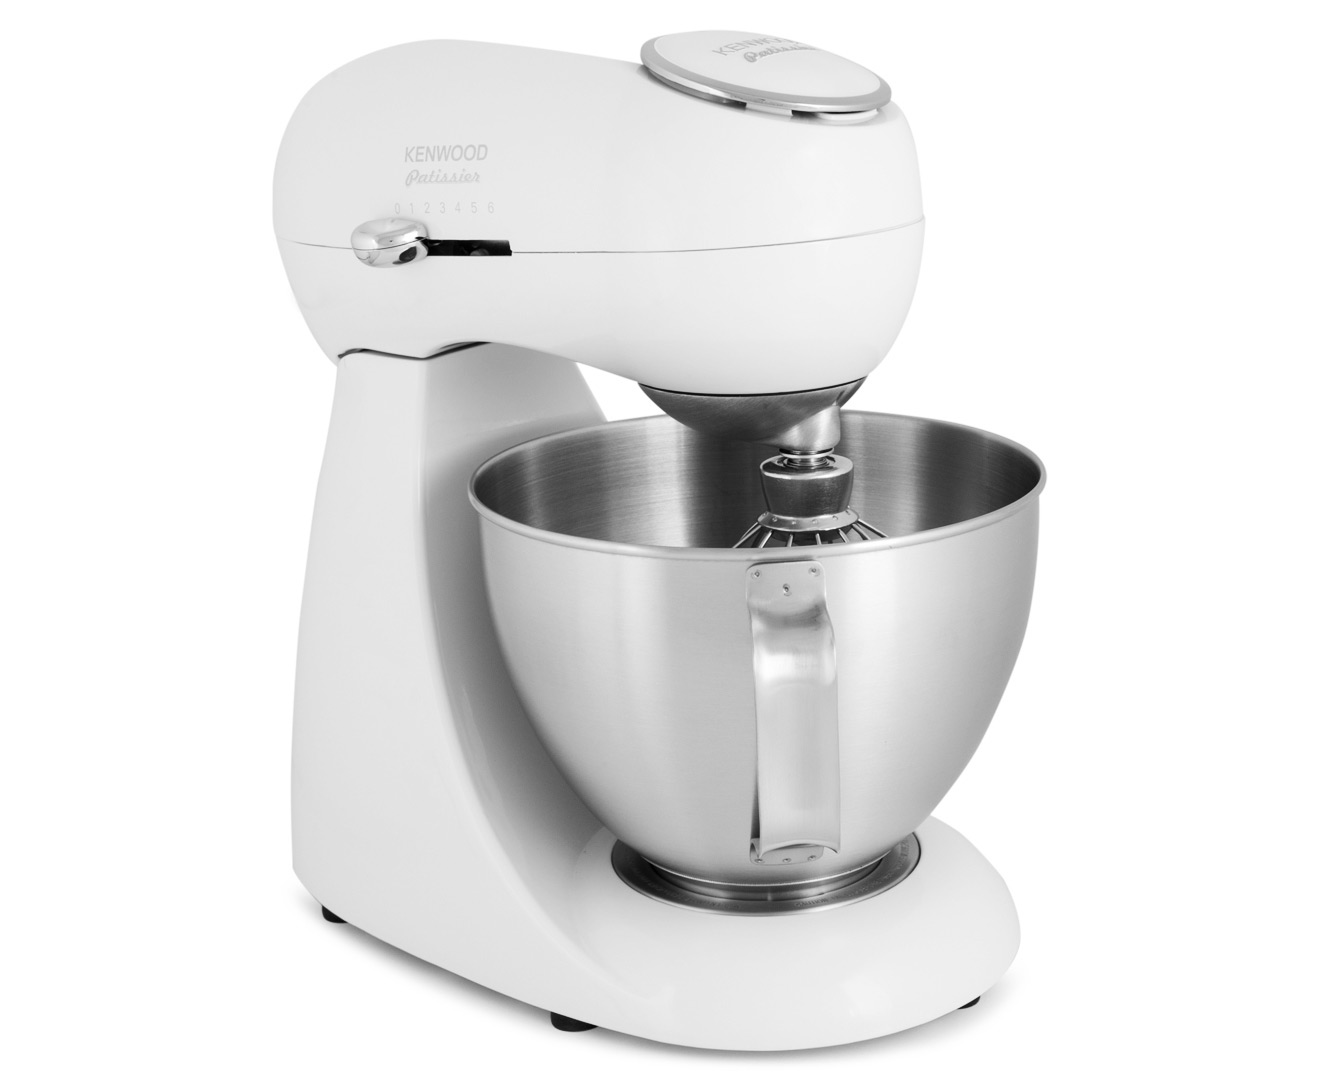 kenwood mx320 patissier stand mixer white. Black Bedroom Furniture Sets. Home Design Ideas